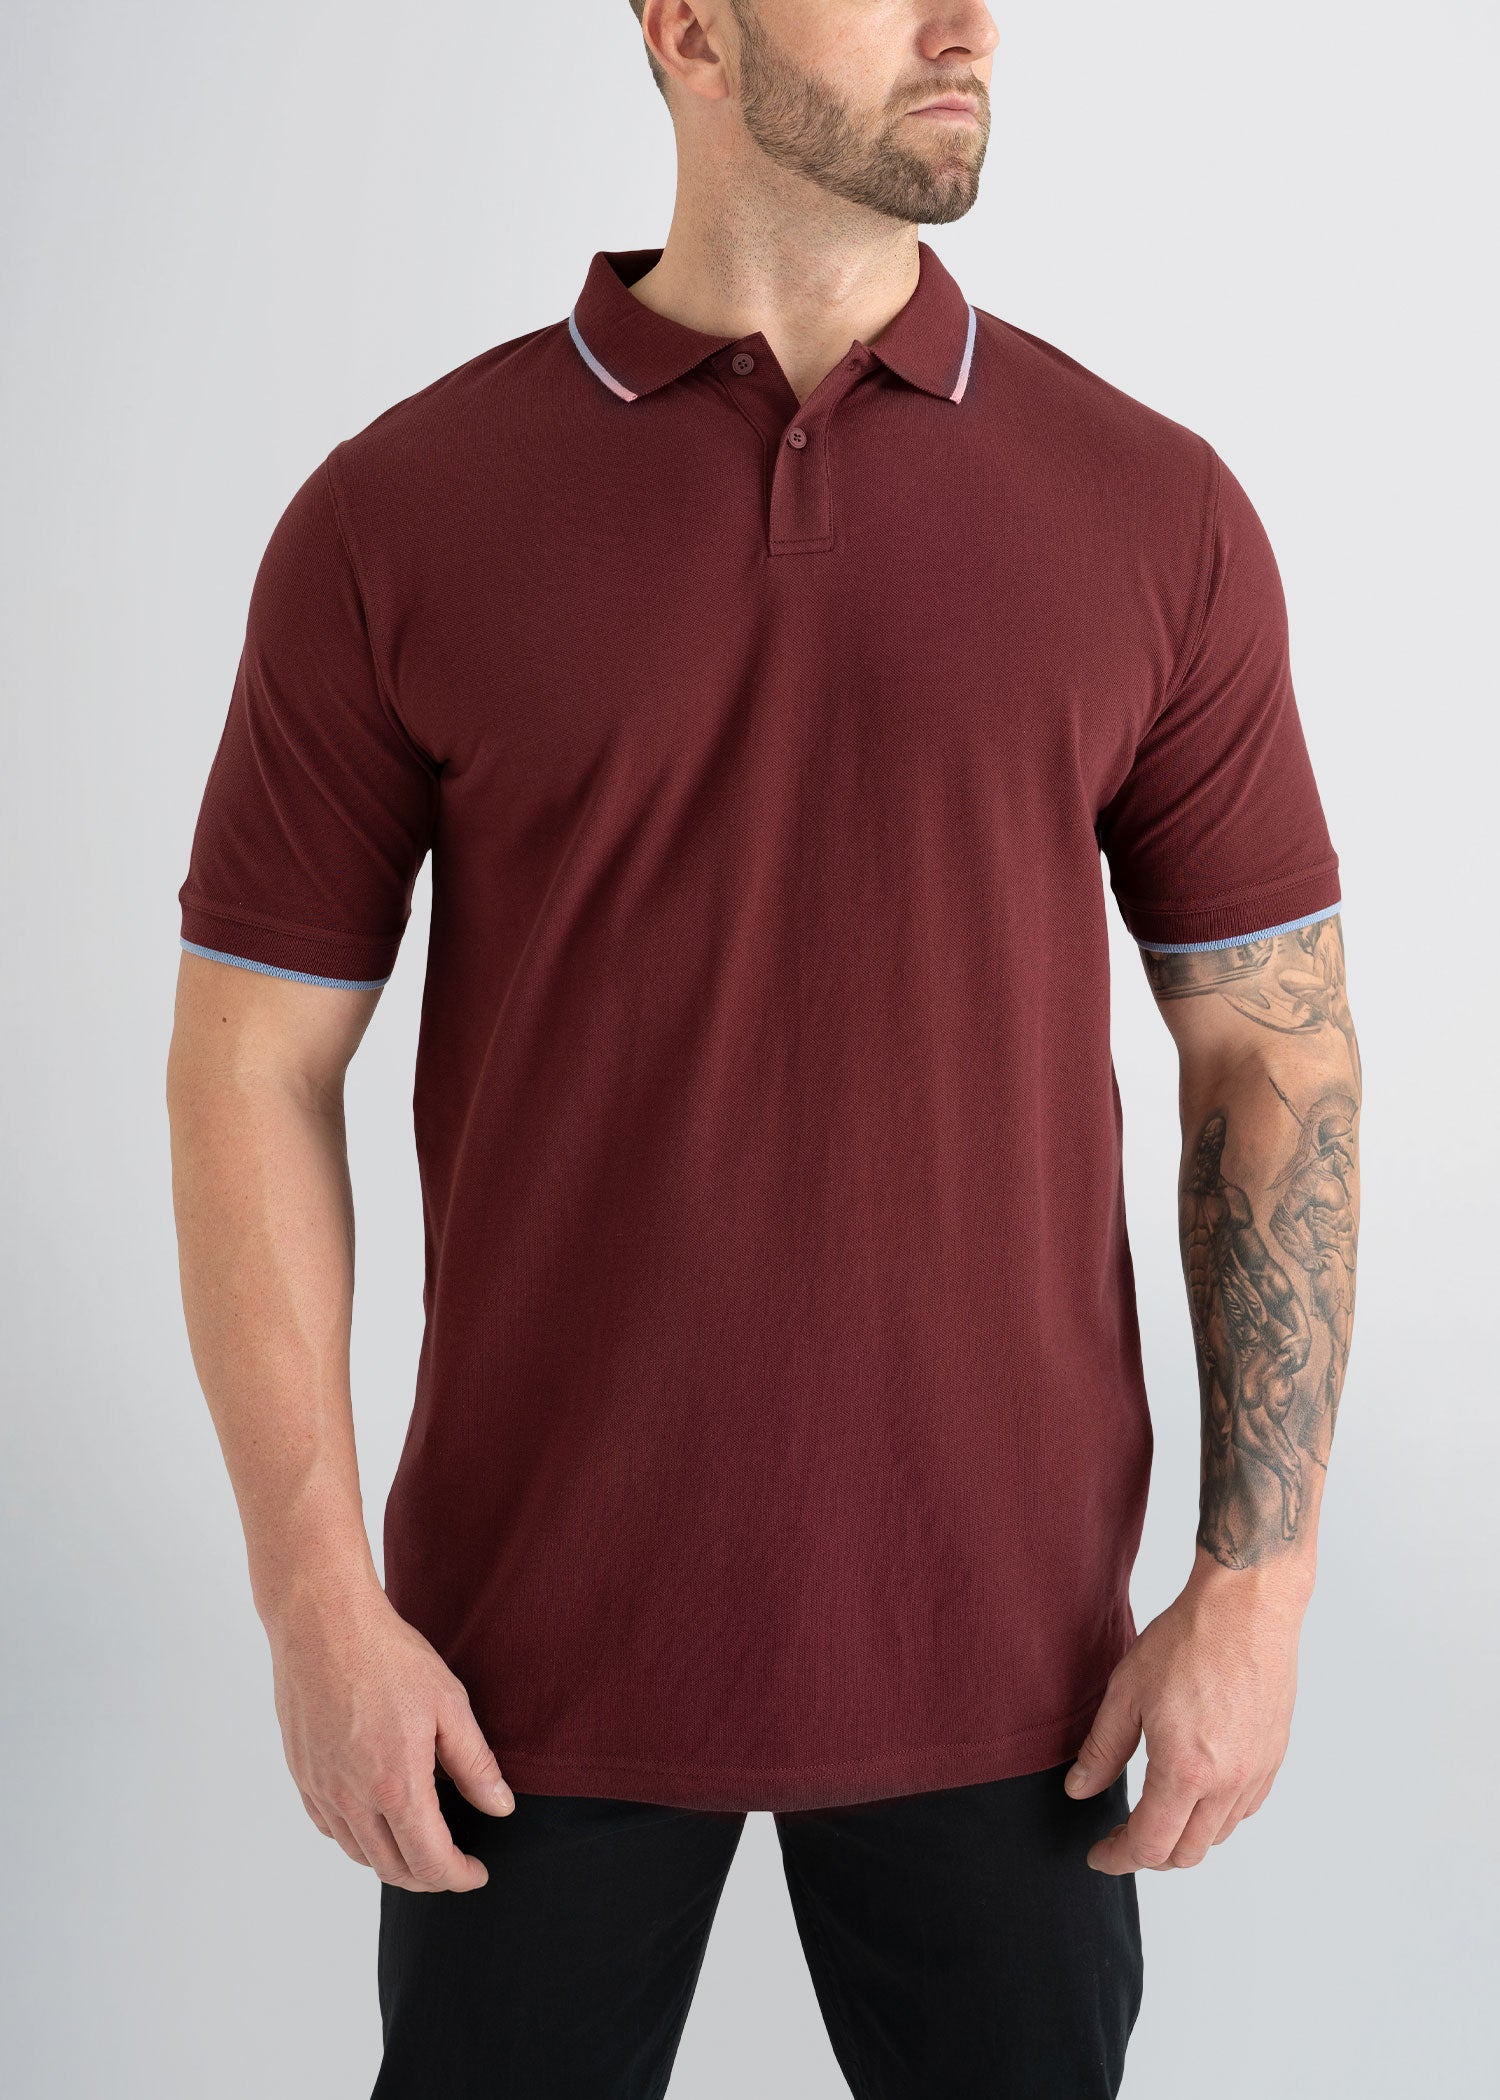 Tall Men's 100% Cotton Polos in Maroon & Blue   American Tall